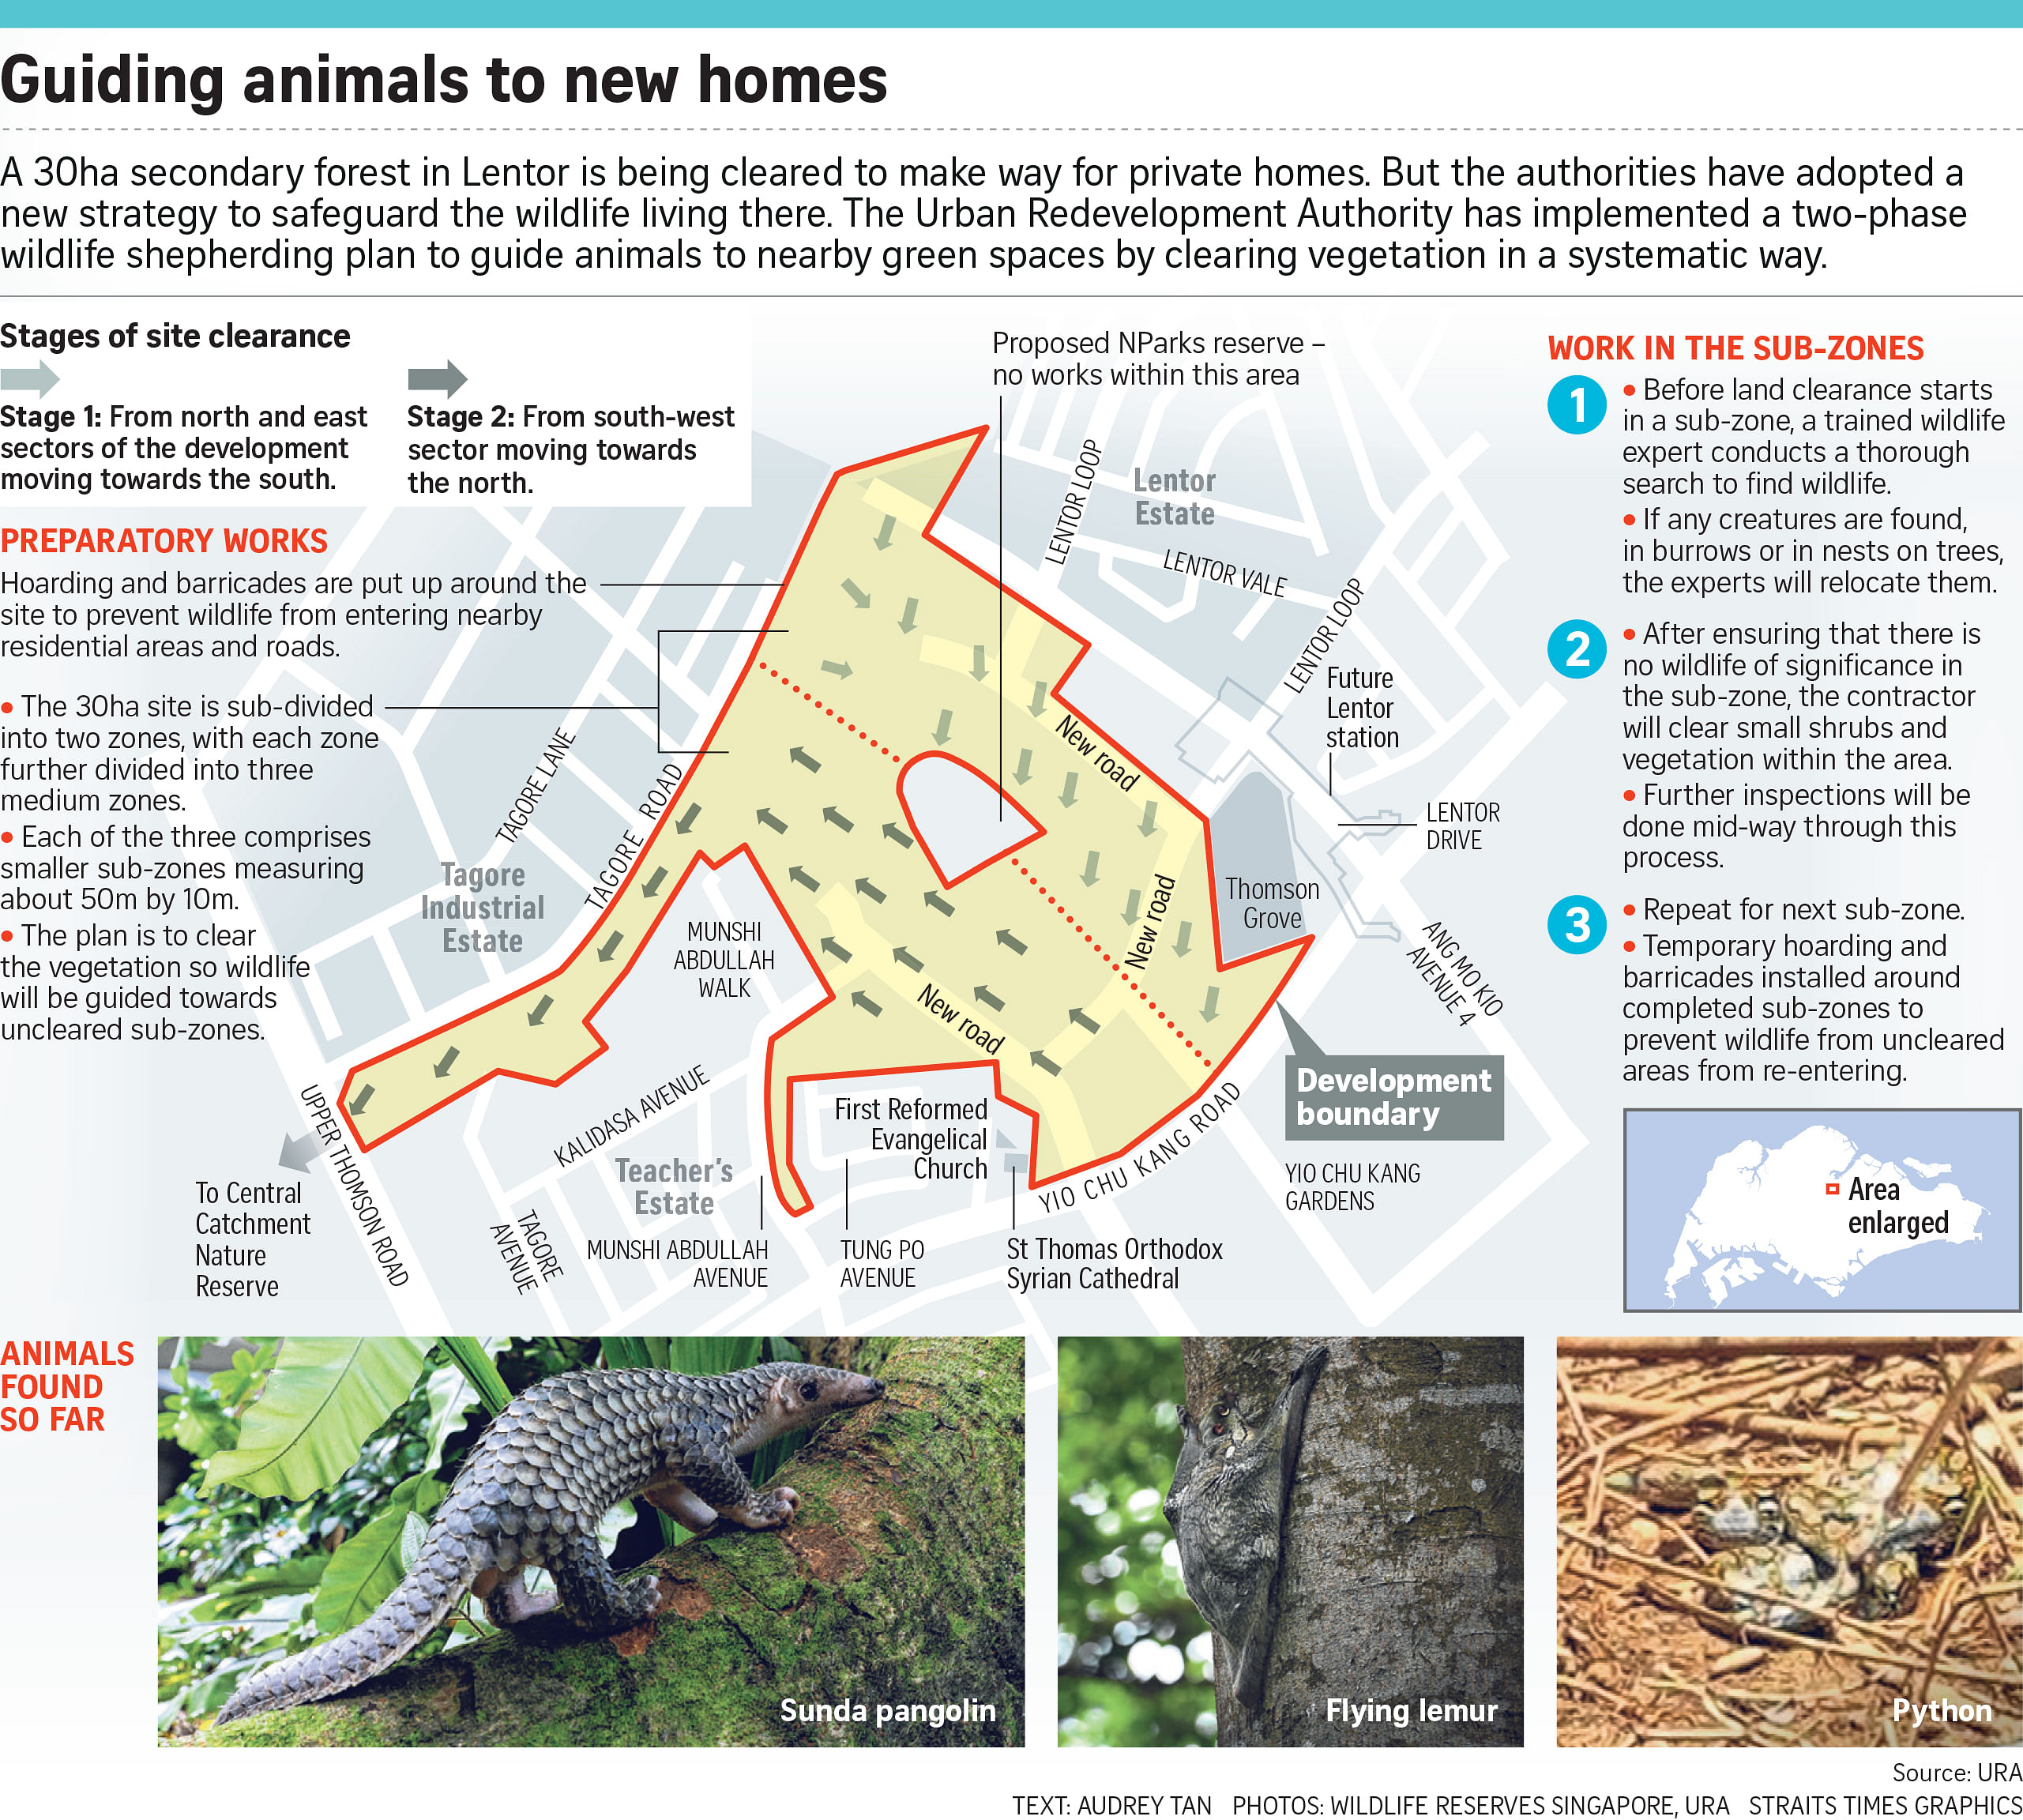 plan to save wildlife at lentor site marked for housing